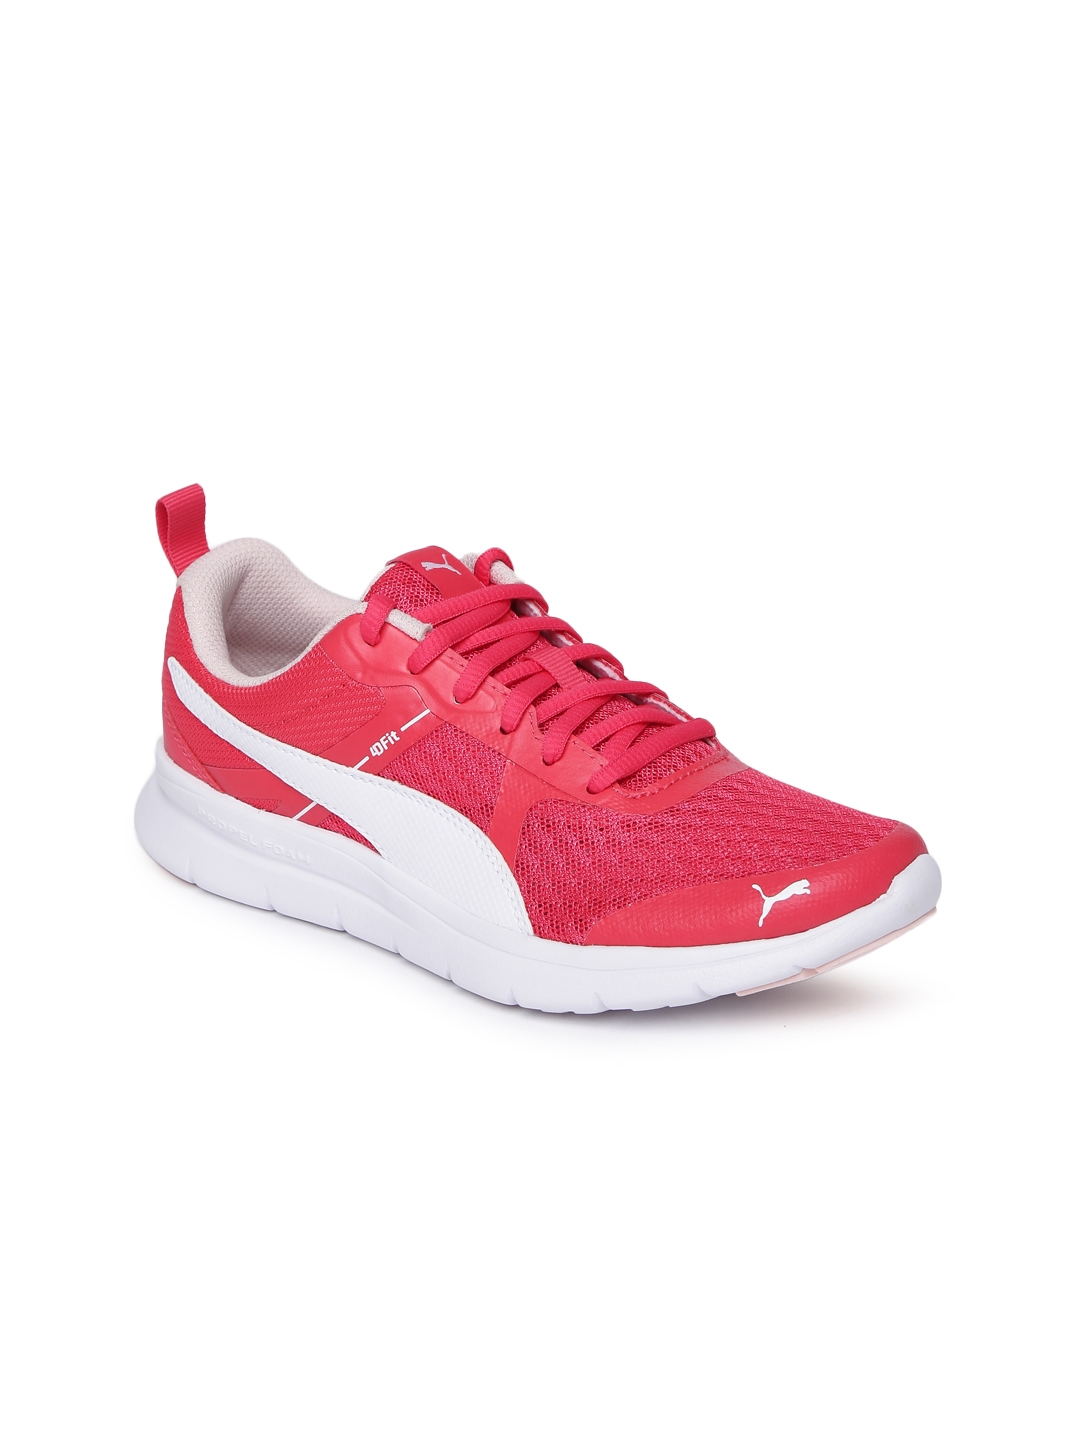 Buy Puma Girls Pink Flex Essential Junior Sneakers - Casual Shoes ... e9582270f